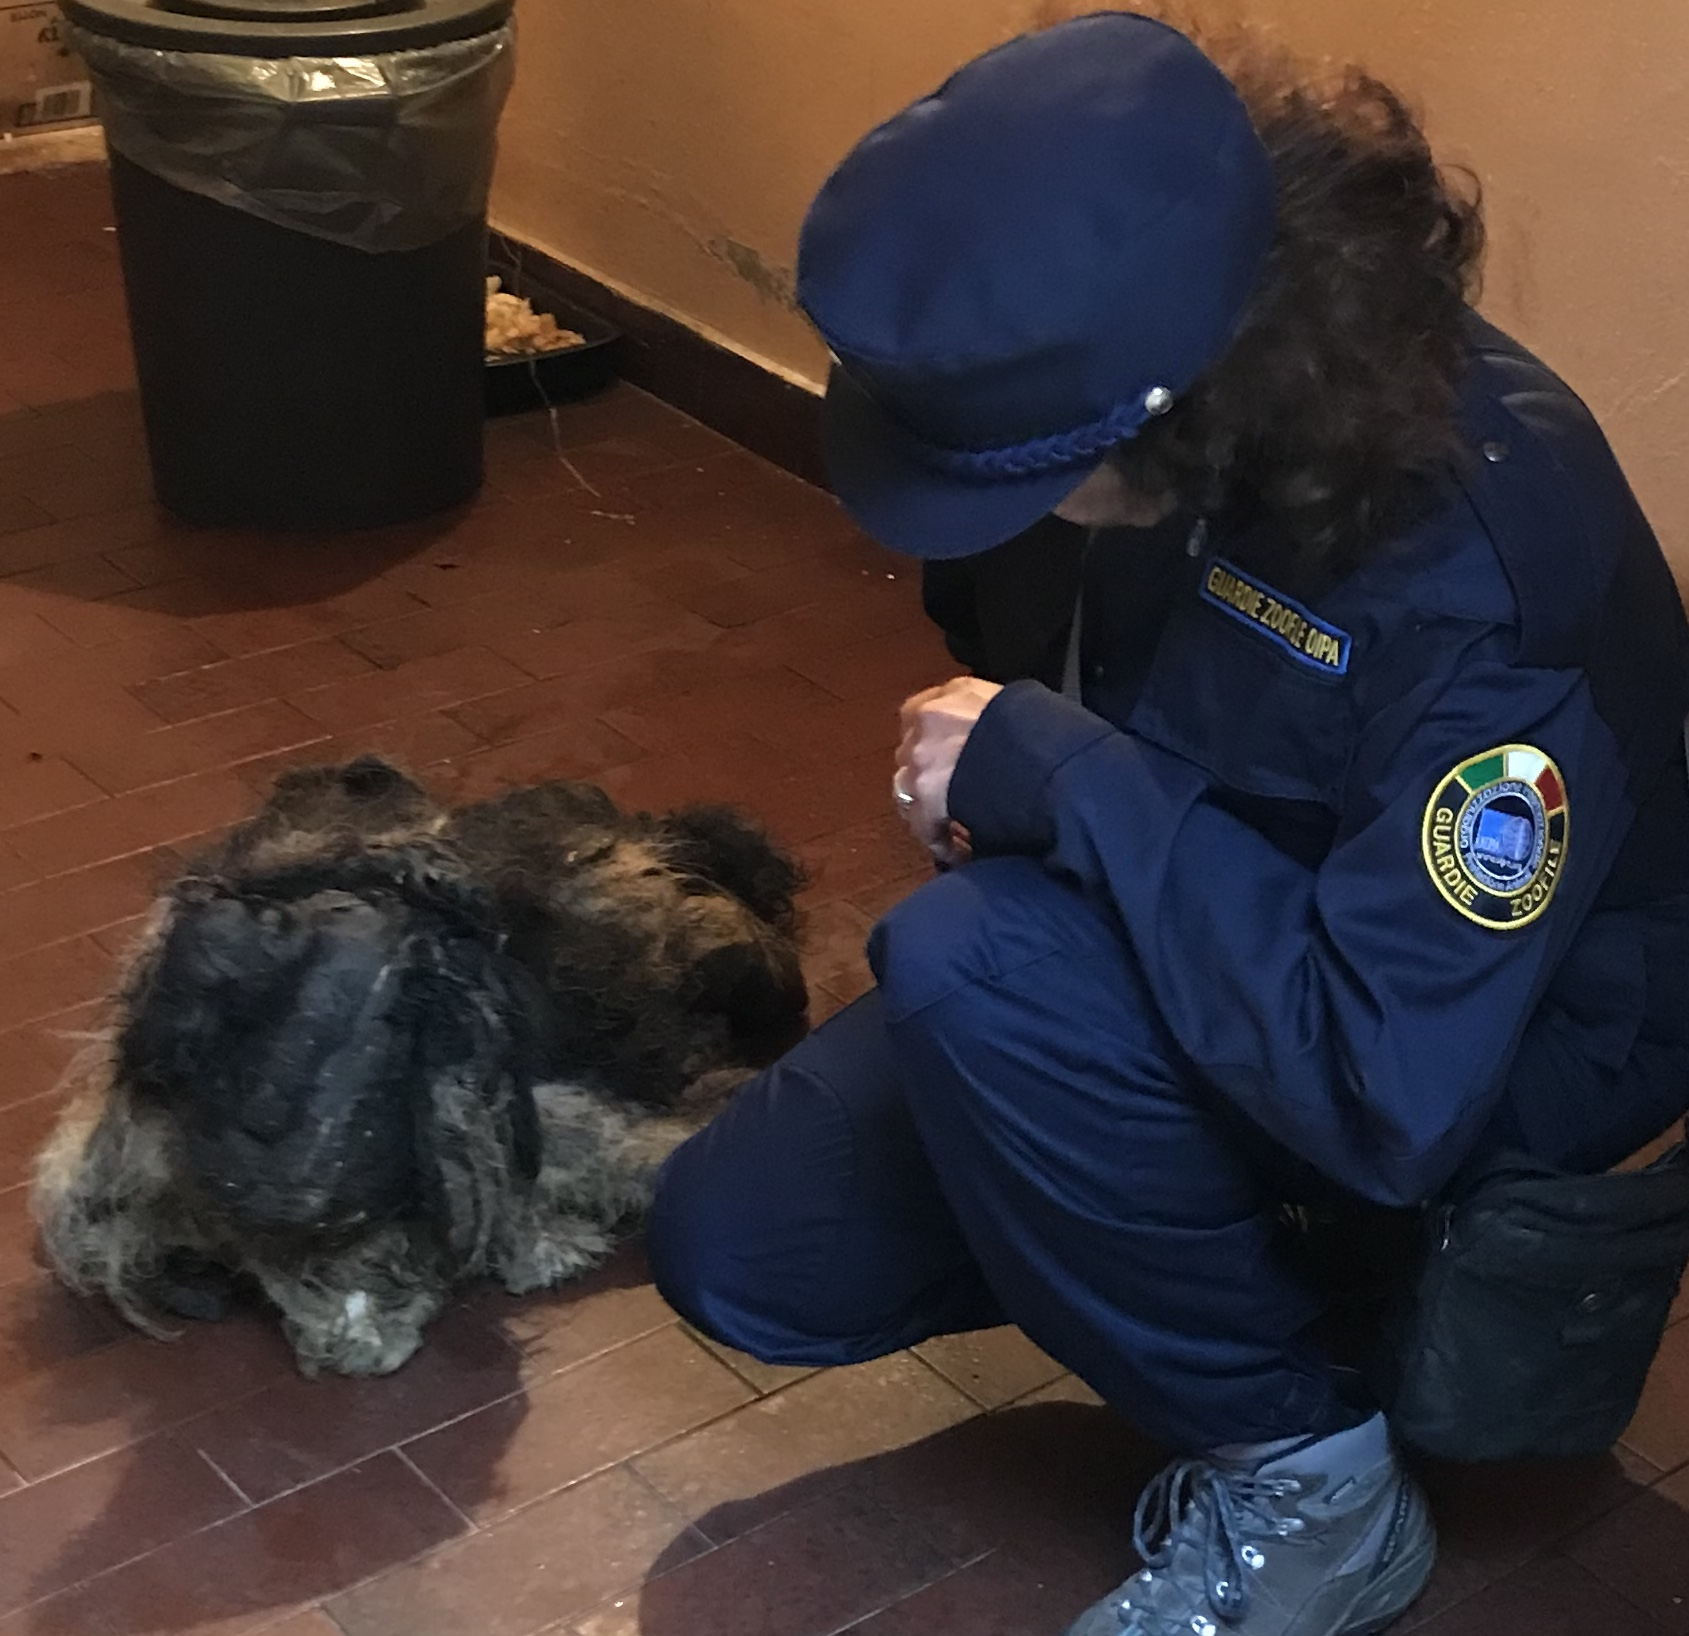 LOCKED IN A DARK GARAGE, ENTIRELY COVERED WITH LAYERS OF DIRT, FECES AND HAIRS: THE OIPA BRESCIA ANIMAL CONTROL OFFICERS SEIZED AN ELDERLY DOG